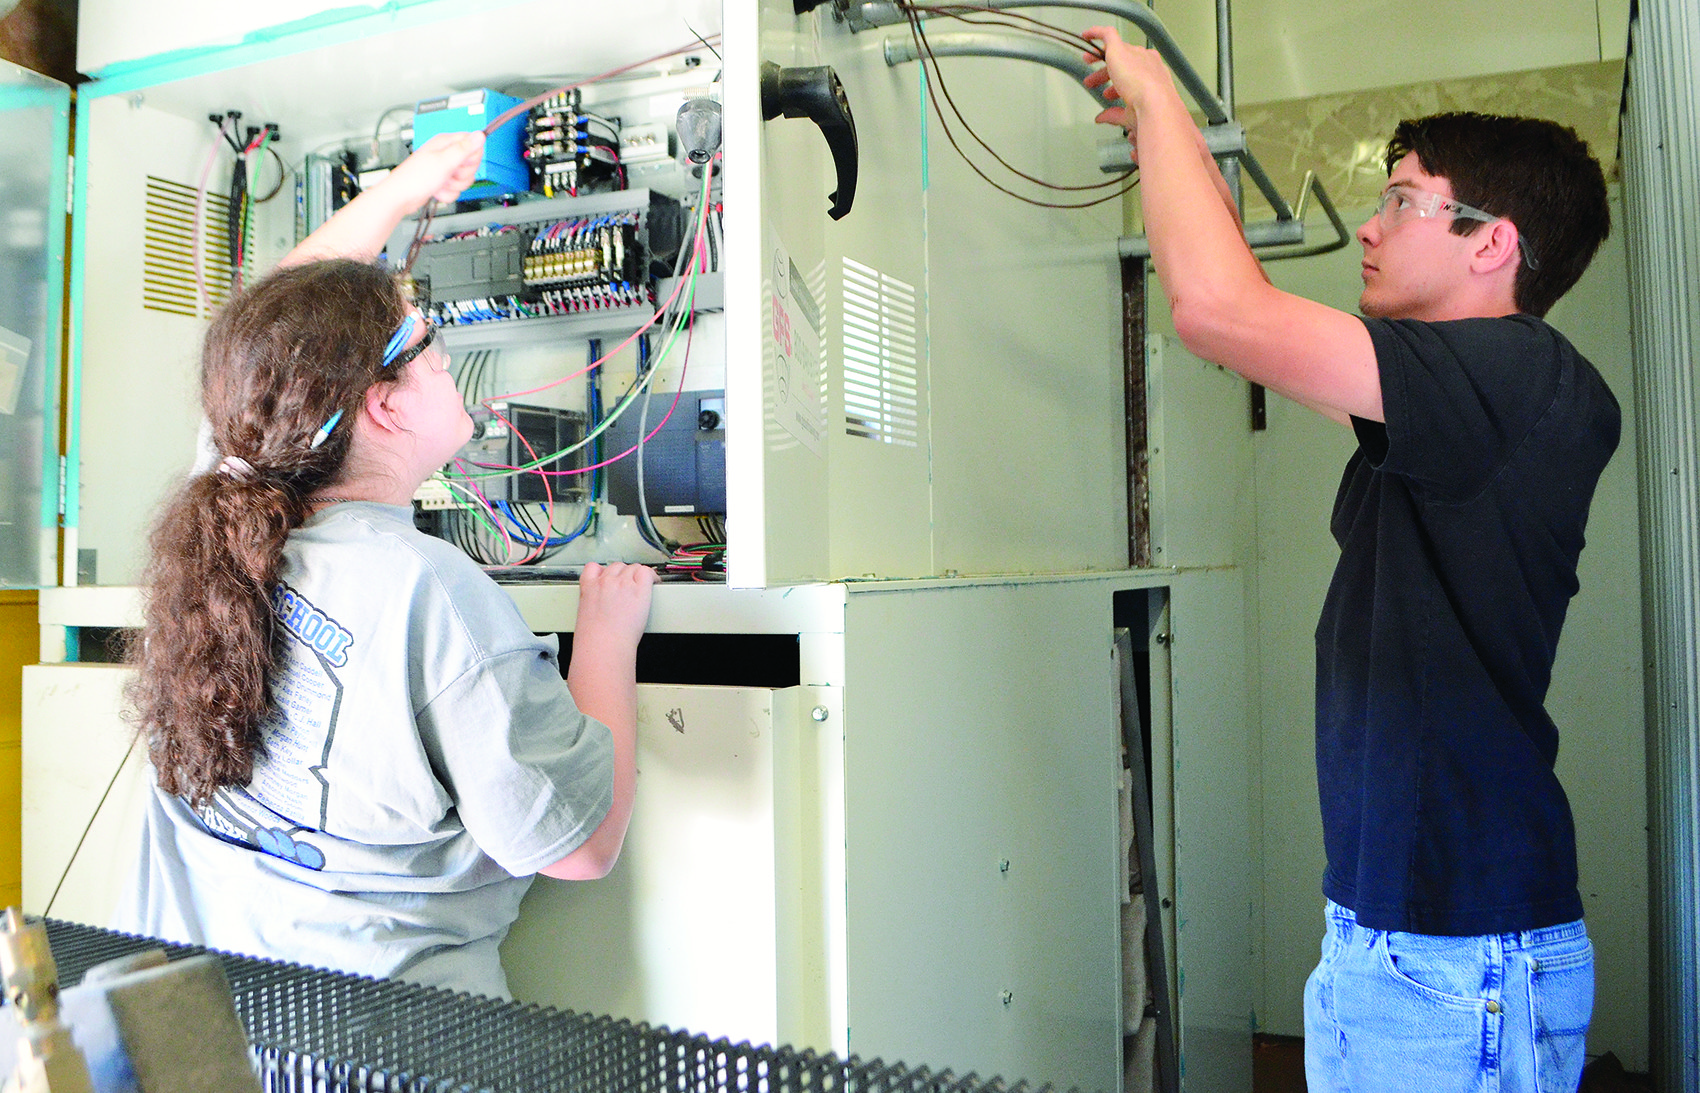 Due to leadership at the Walker County Center of Technology, students are learning cutting edge skills and taking advantage of new programs.